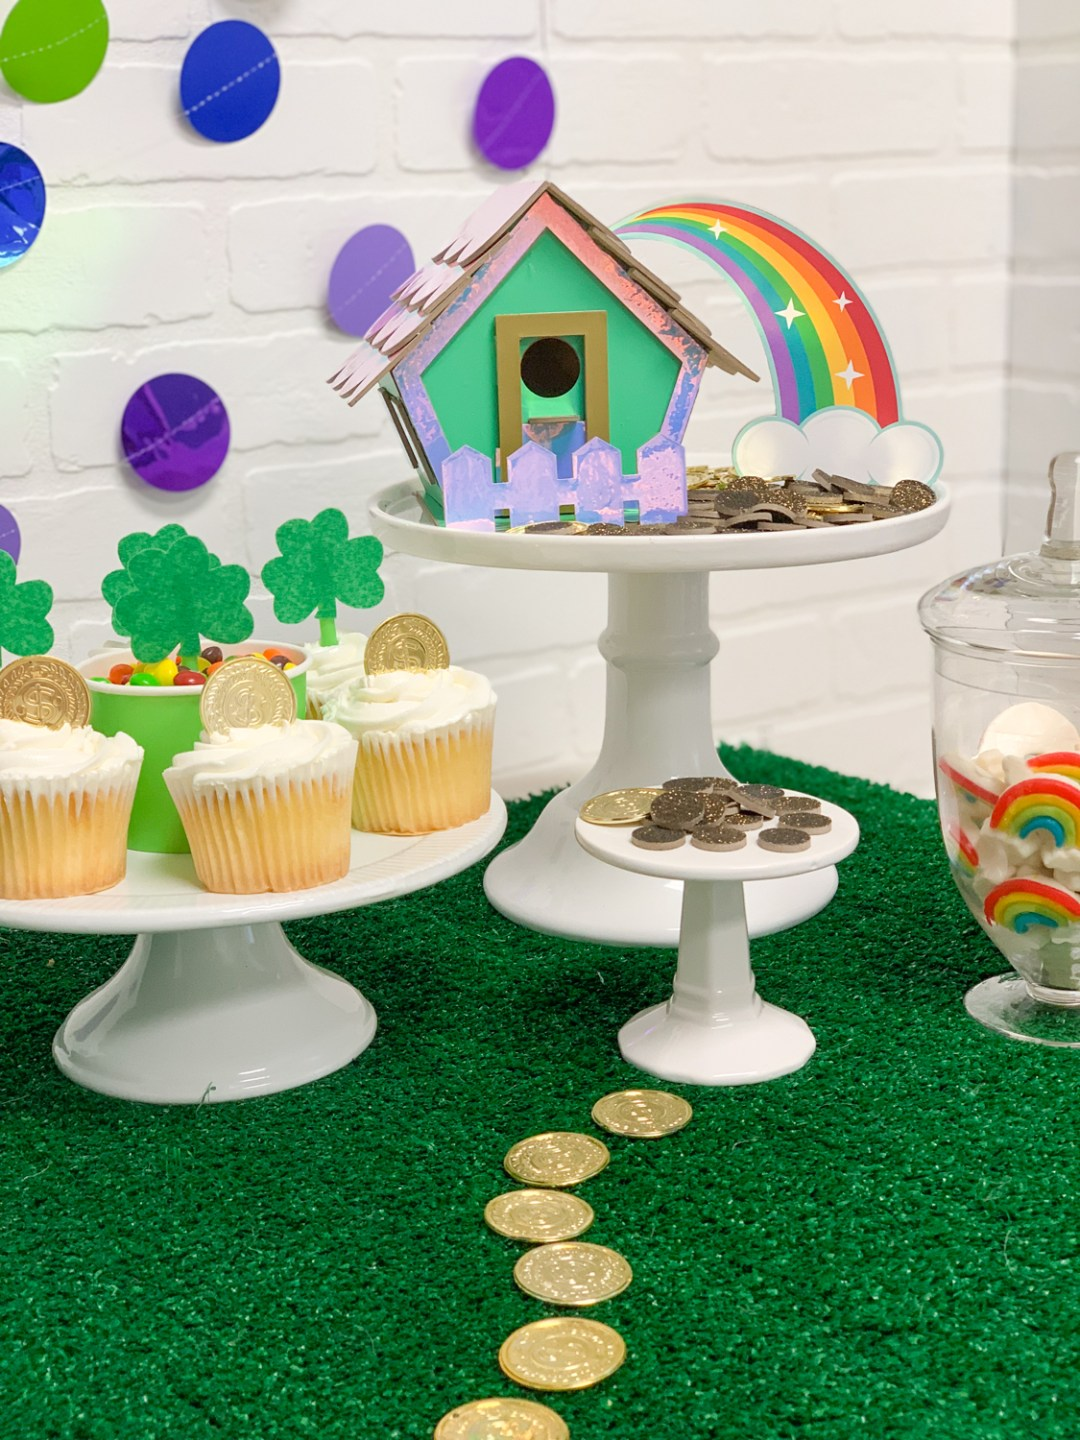 St. Patrick's Day Party Leprechaun Trap Rainbow Gold Coins Shamrocks Cupcakes